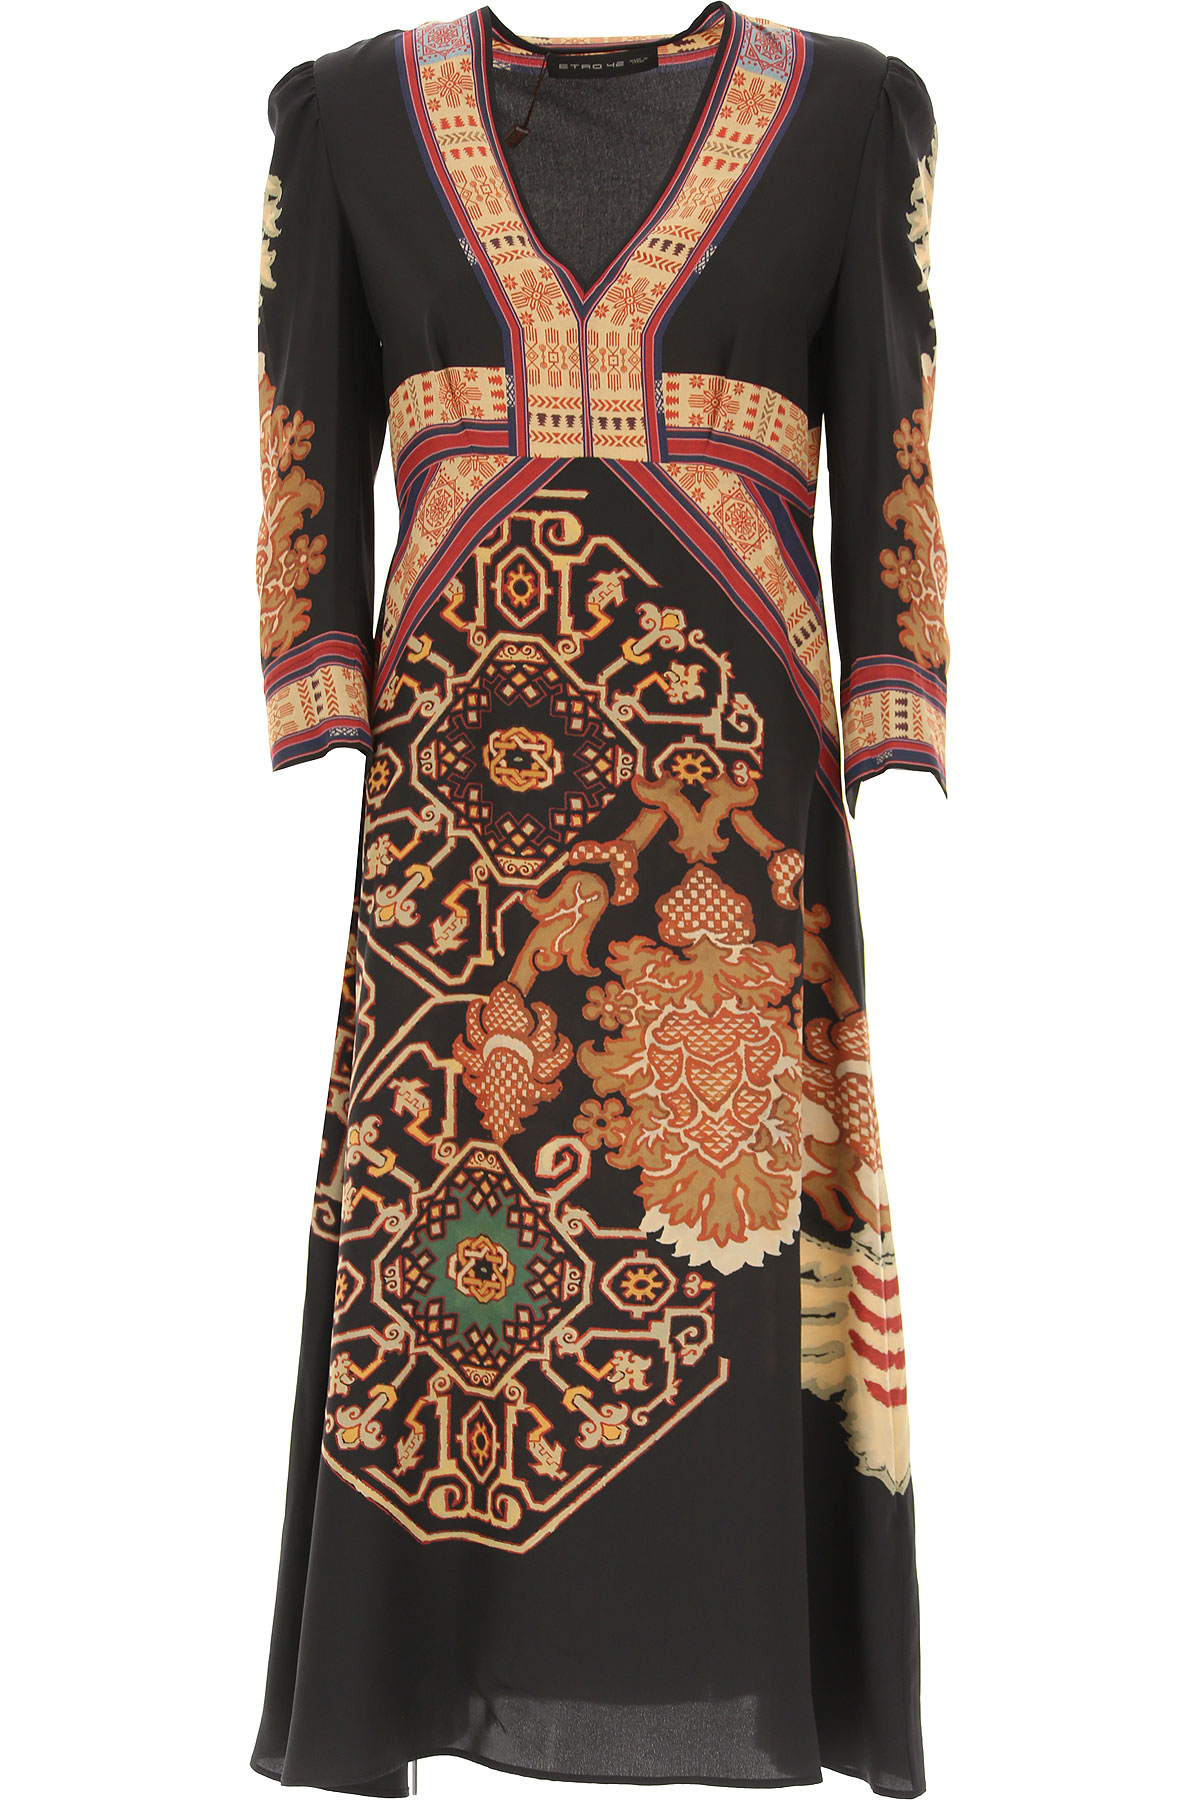 Etro Dress for Women, Evening Cocktail Party, Black, Silk, 2019, 6 8